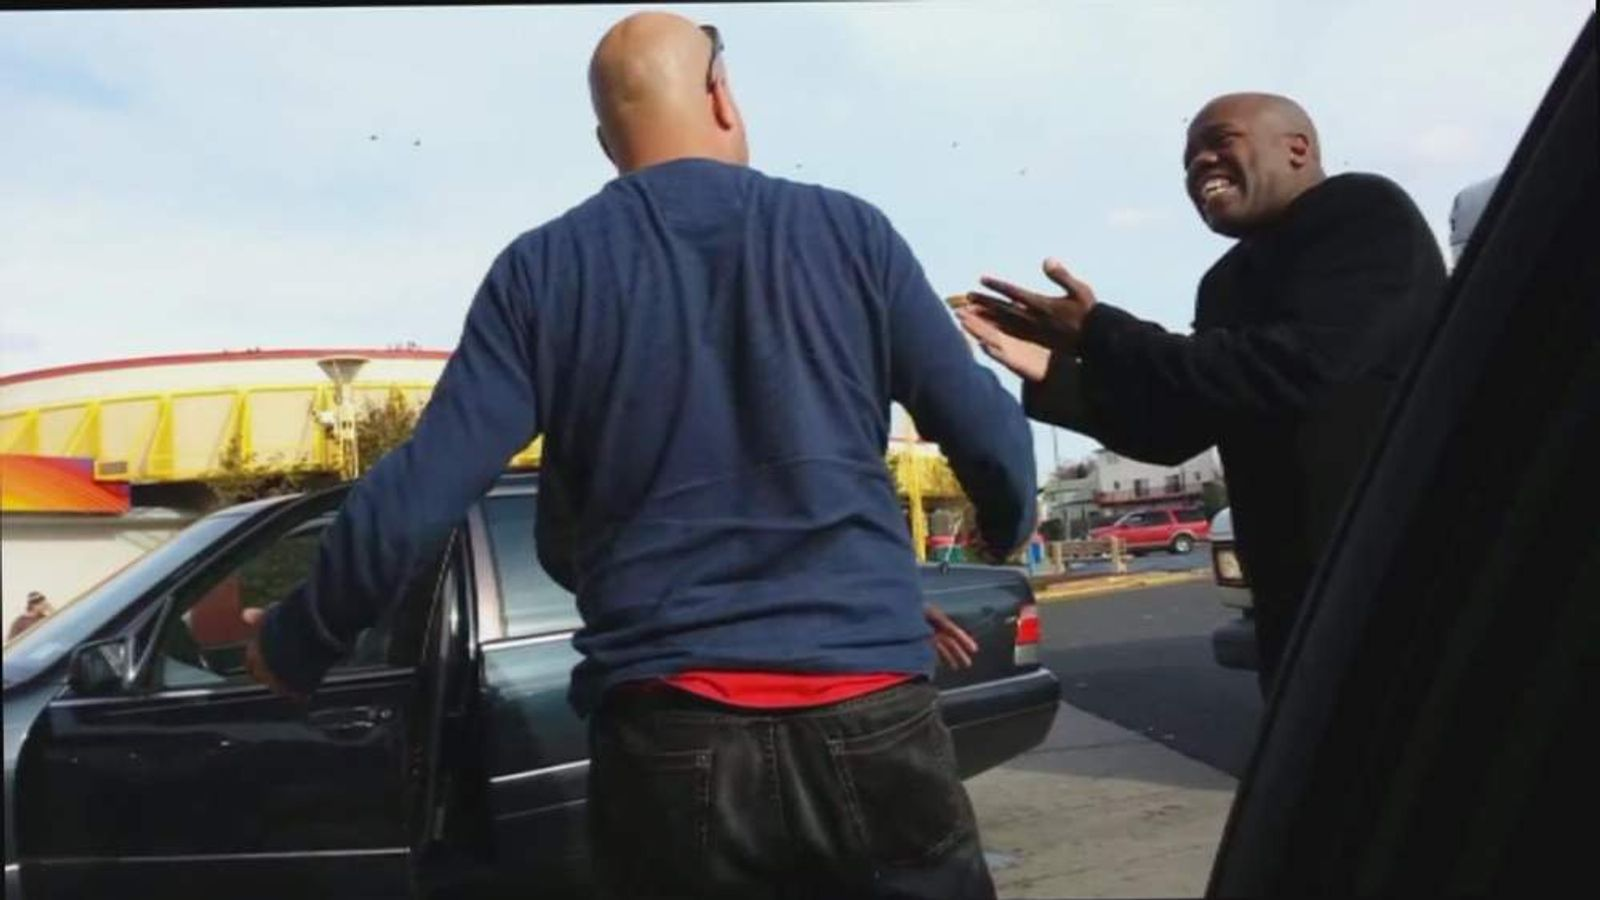 Two men argue at a petrol station